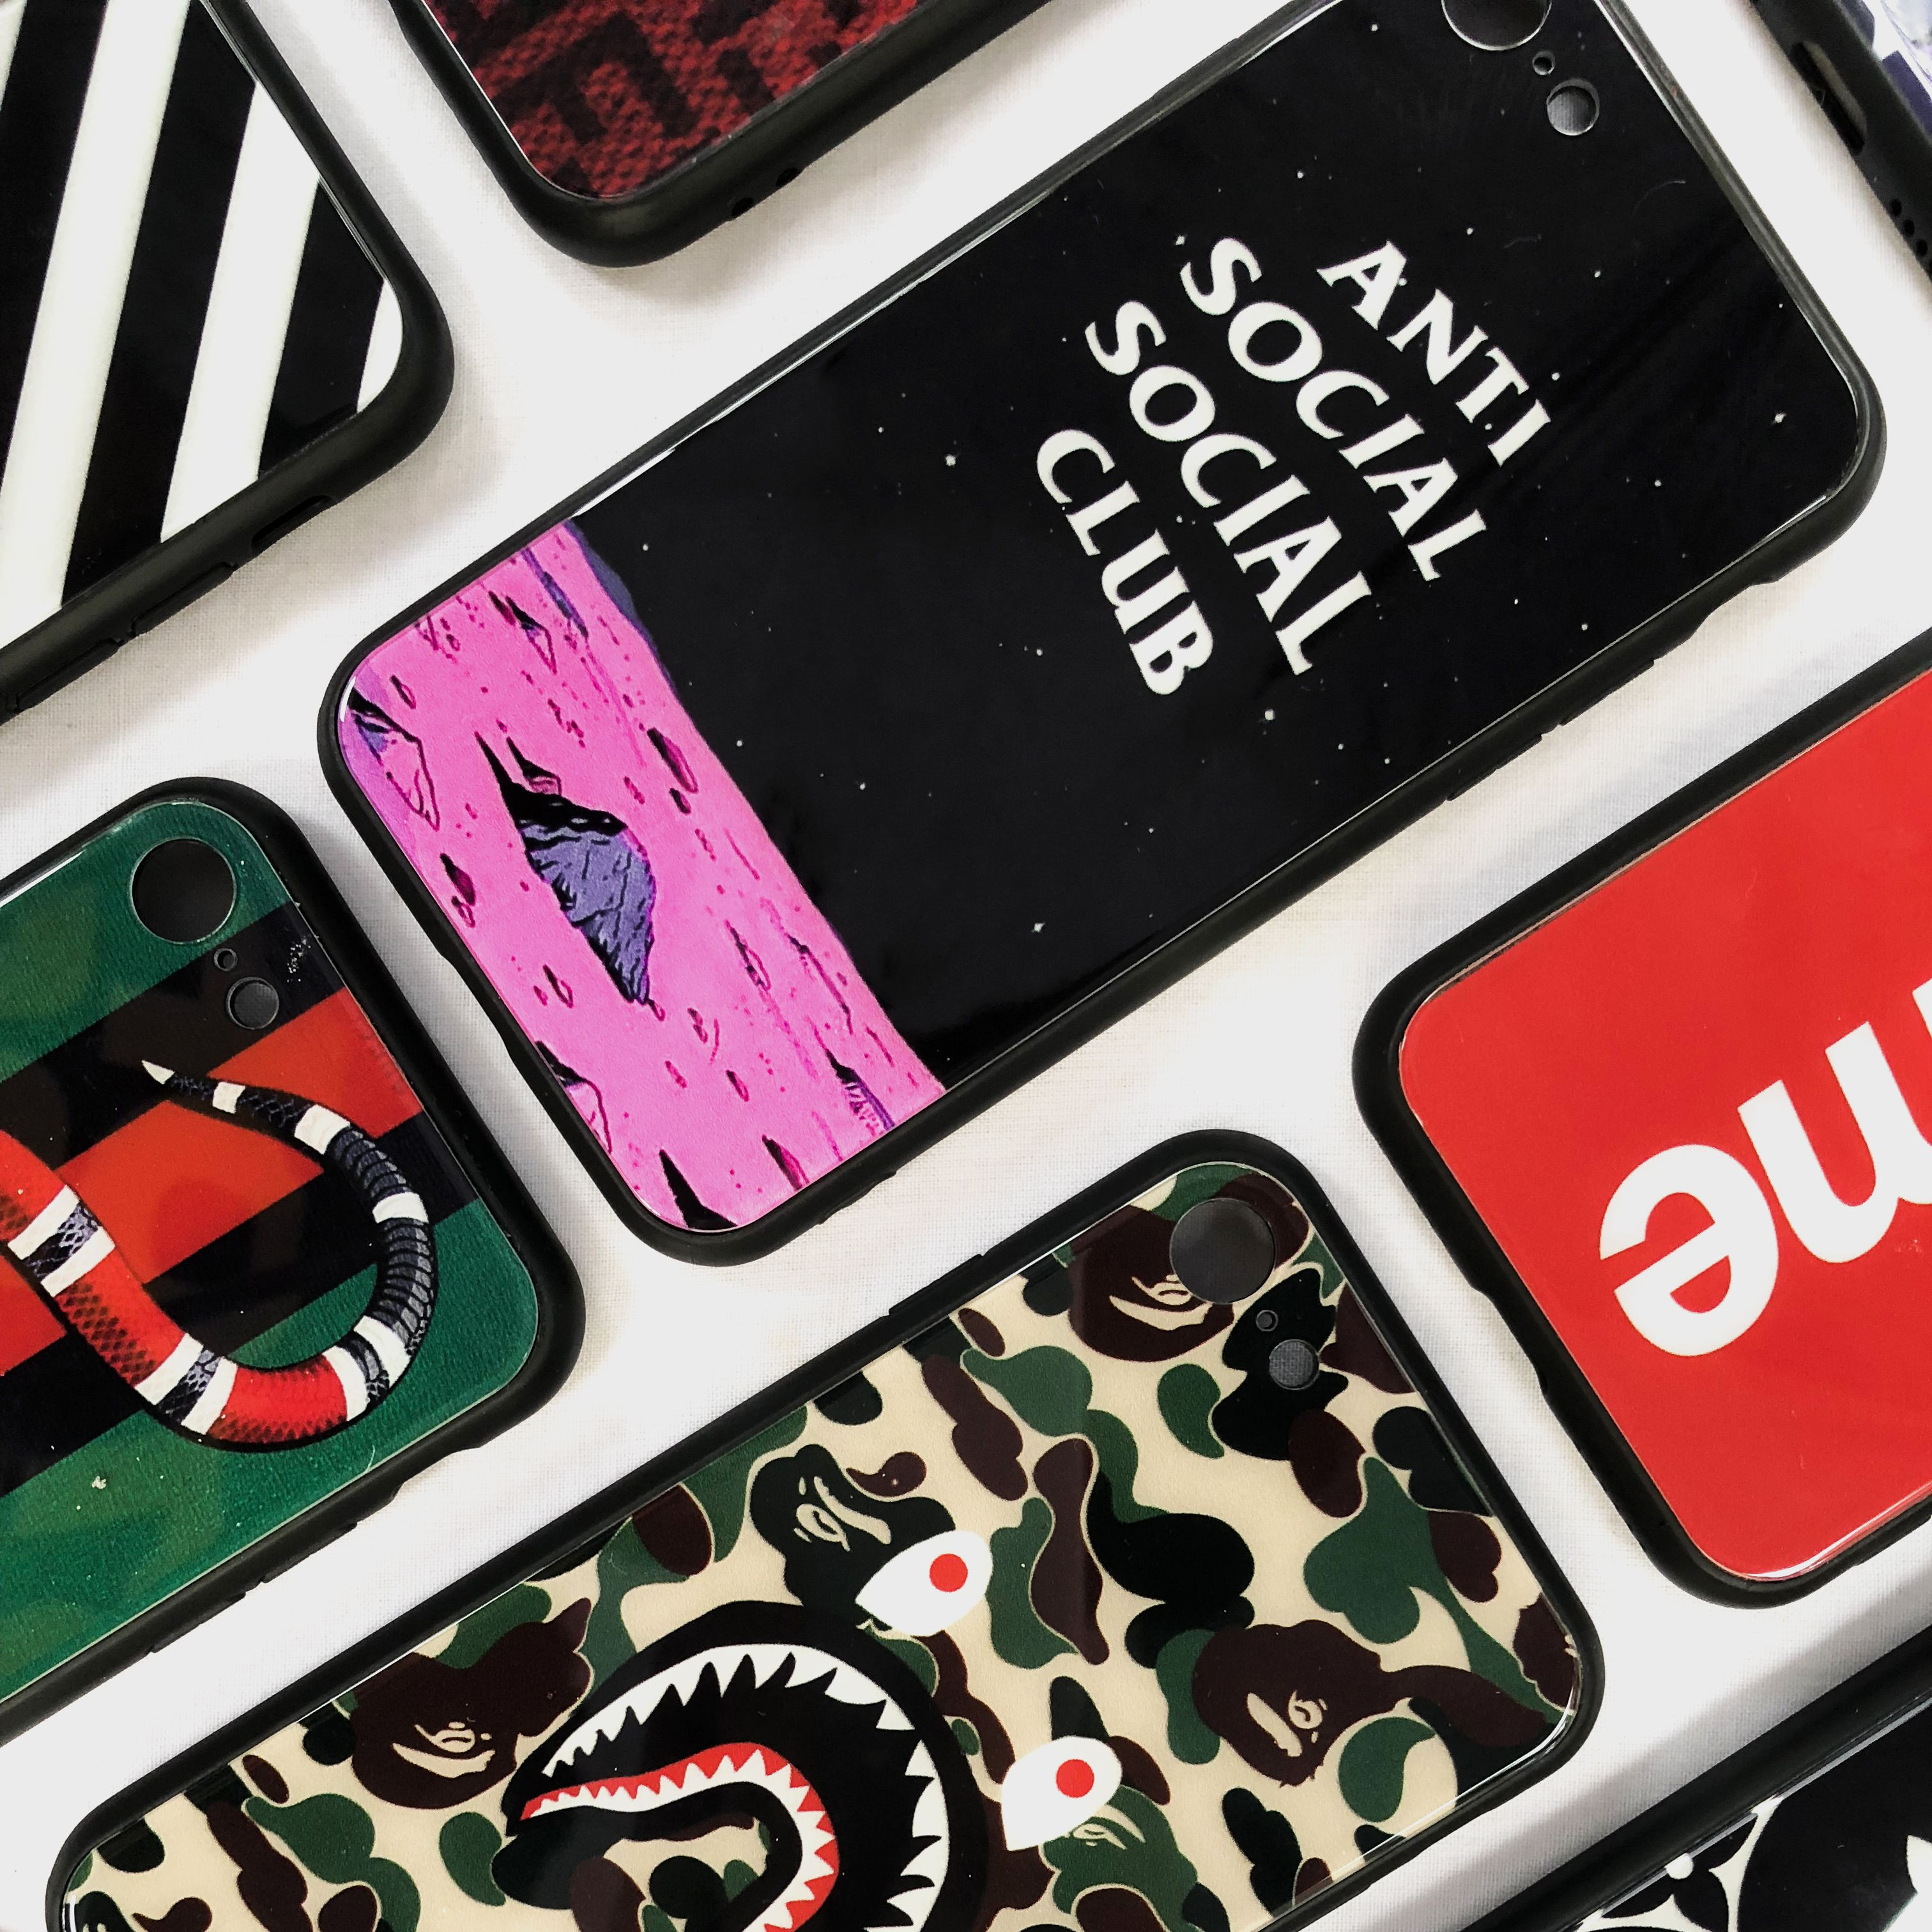 Hypebeast iPhone Cases (With images) Iphone cases, Case